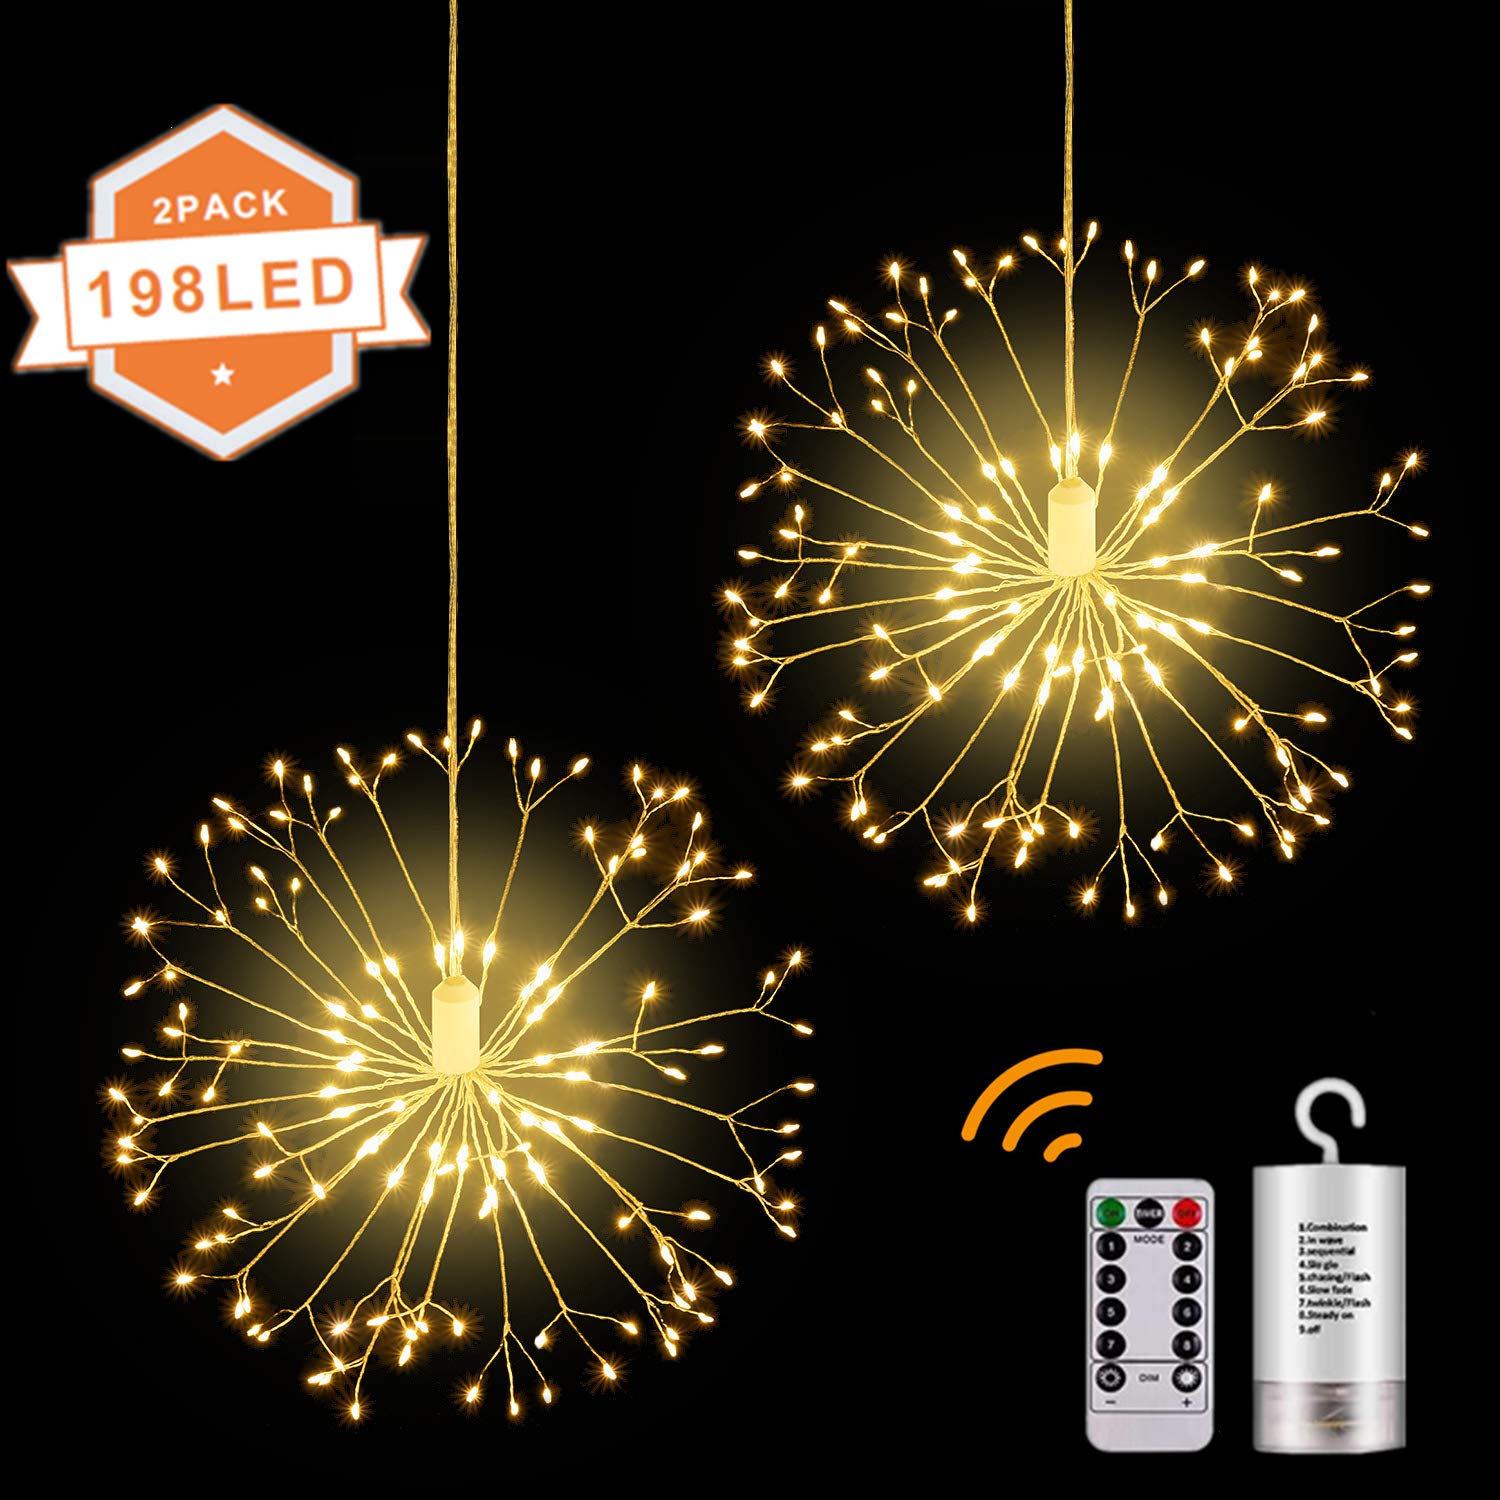 Montop Led String Lights 2 Pack Battery Operated Hanging Indoor Outdoor String Lights With 198 Led 8 Modes Dimmable Starburst Lights With Remote Control Waterproof Decorative Wire Lights For Parties